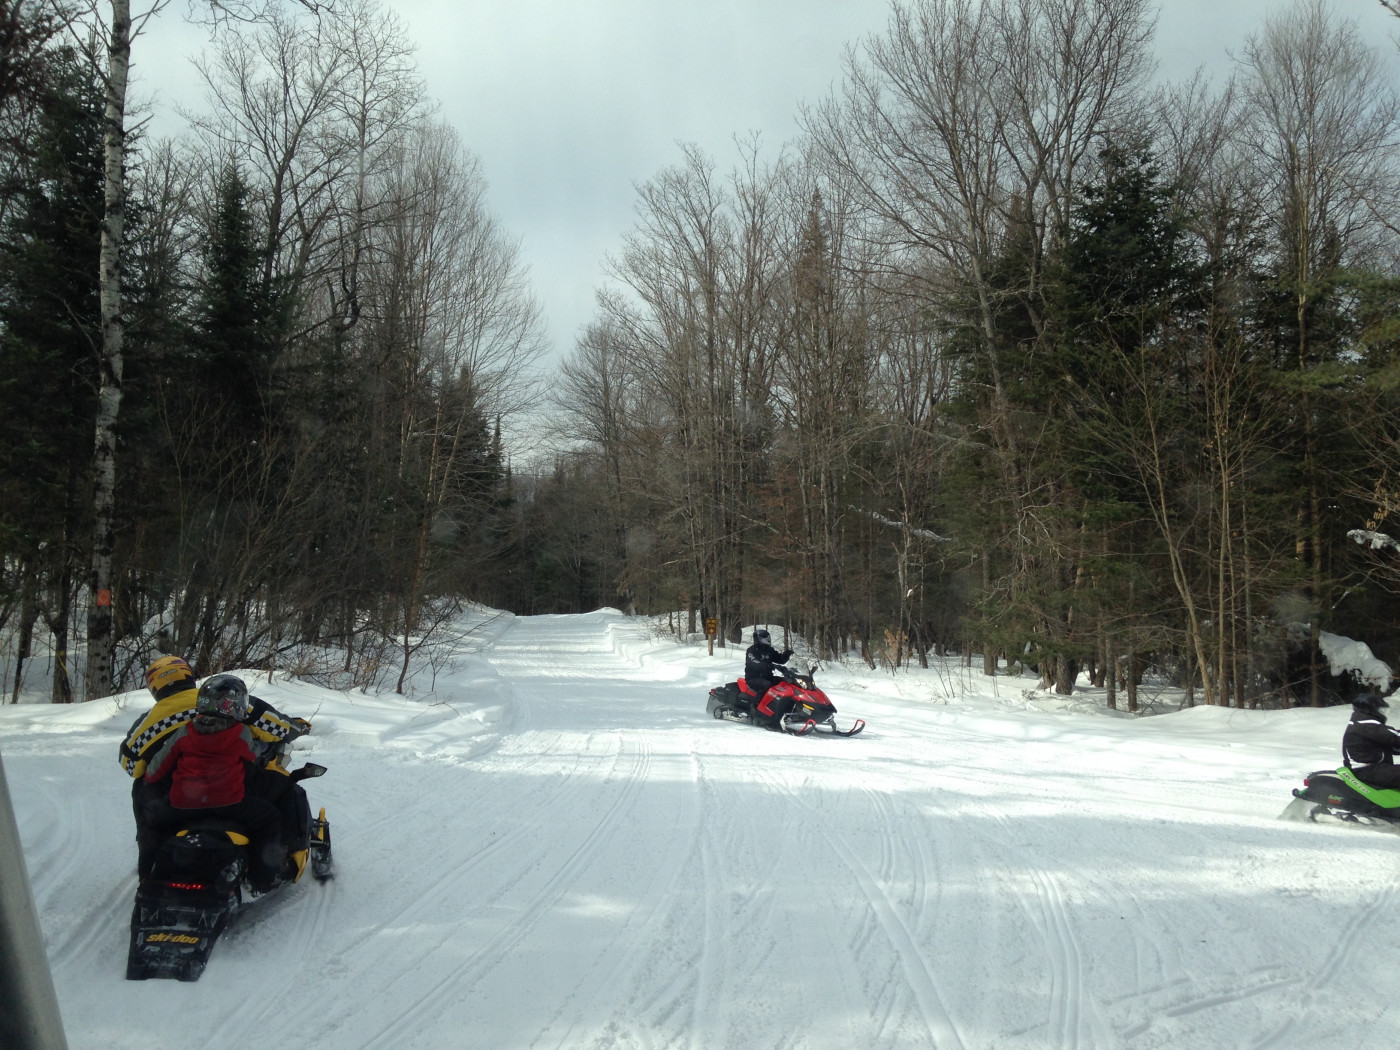 Great groomed trails, hardest decision is which way to go.